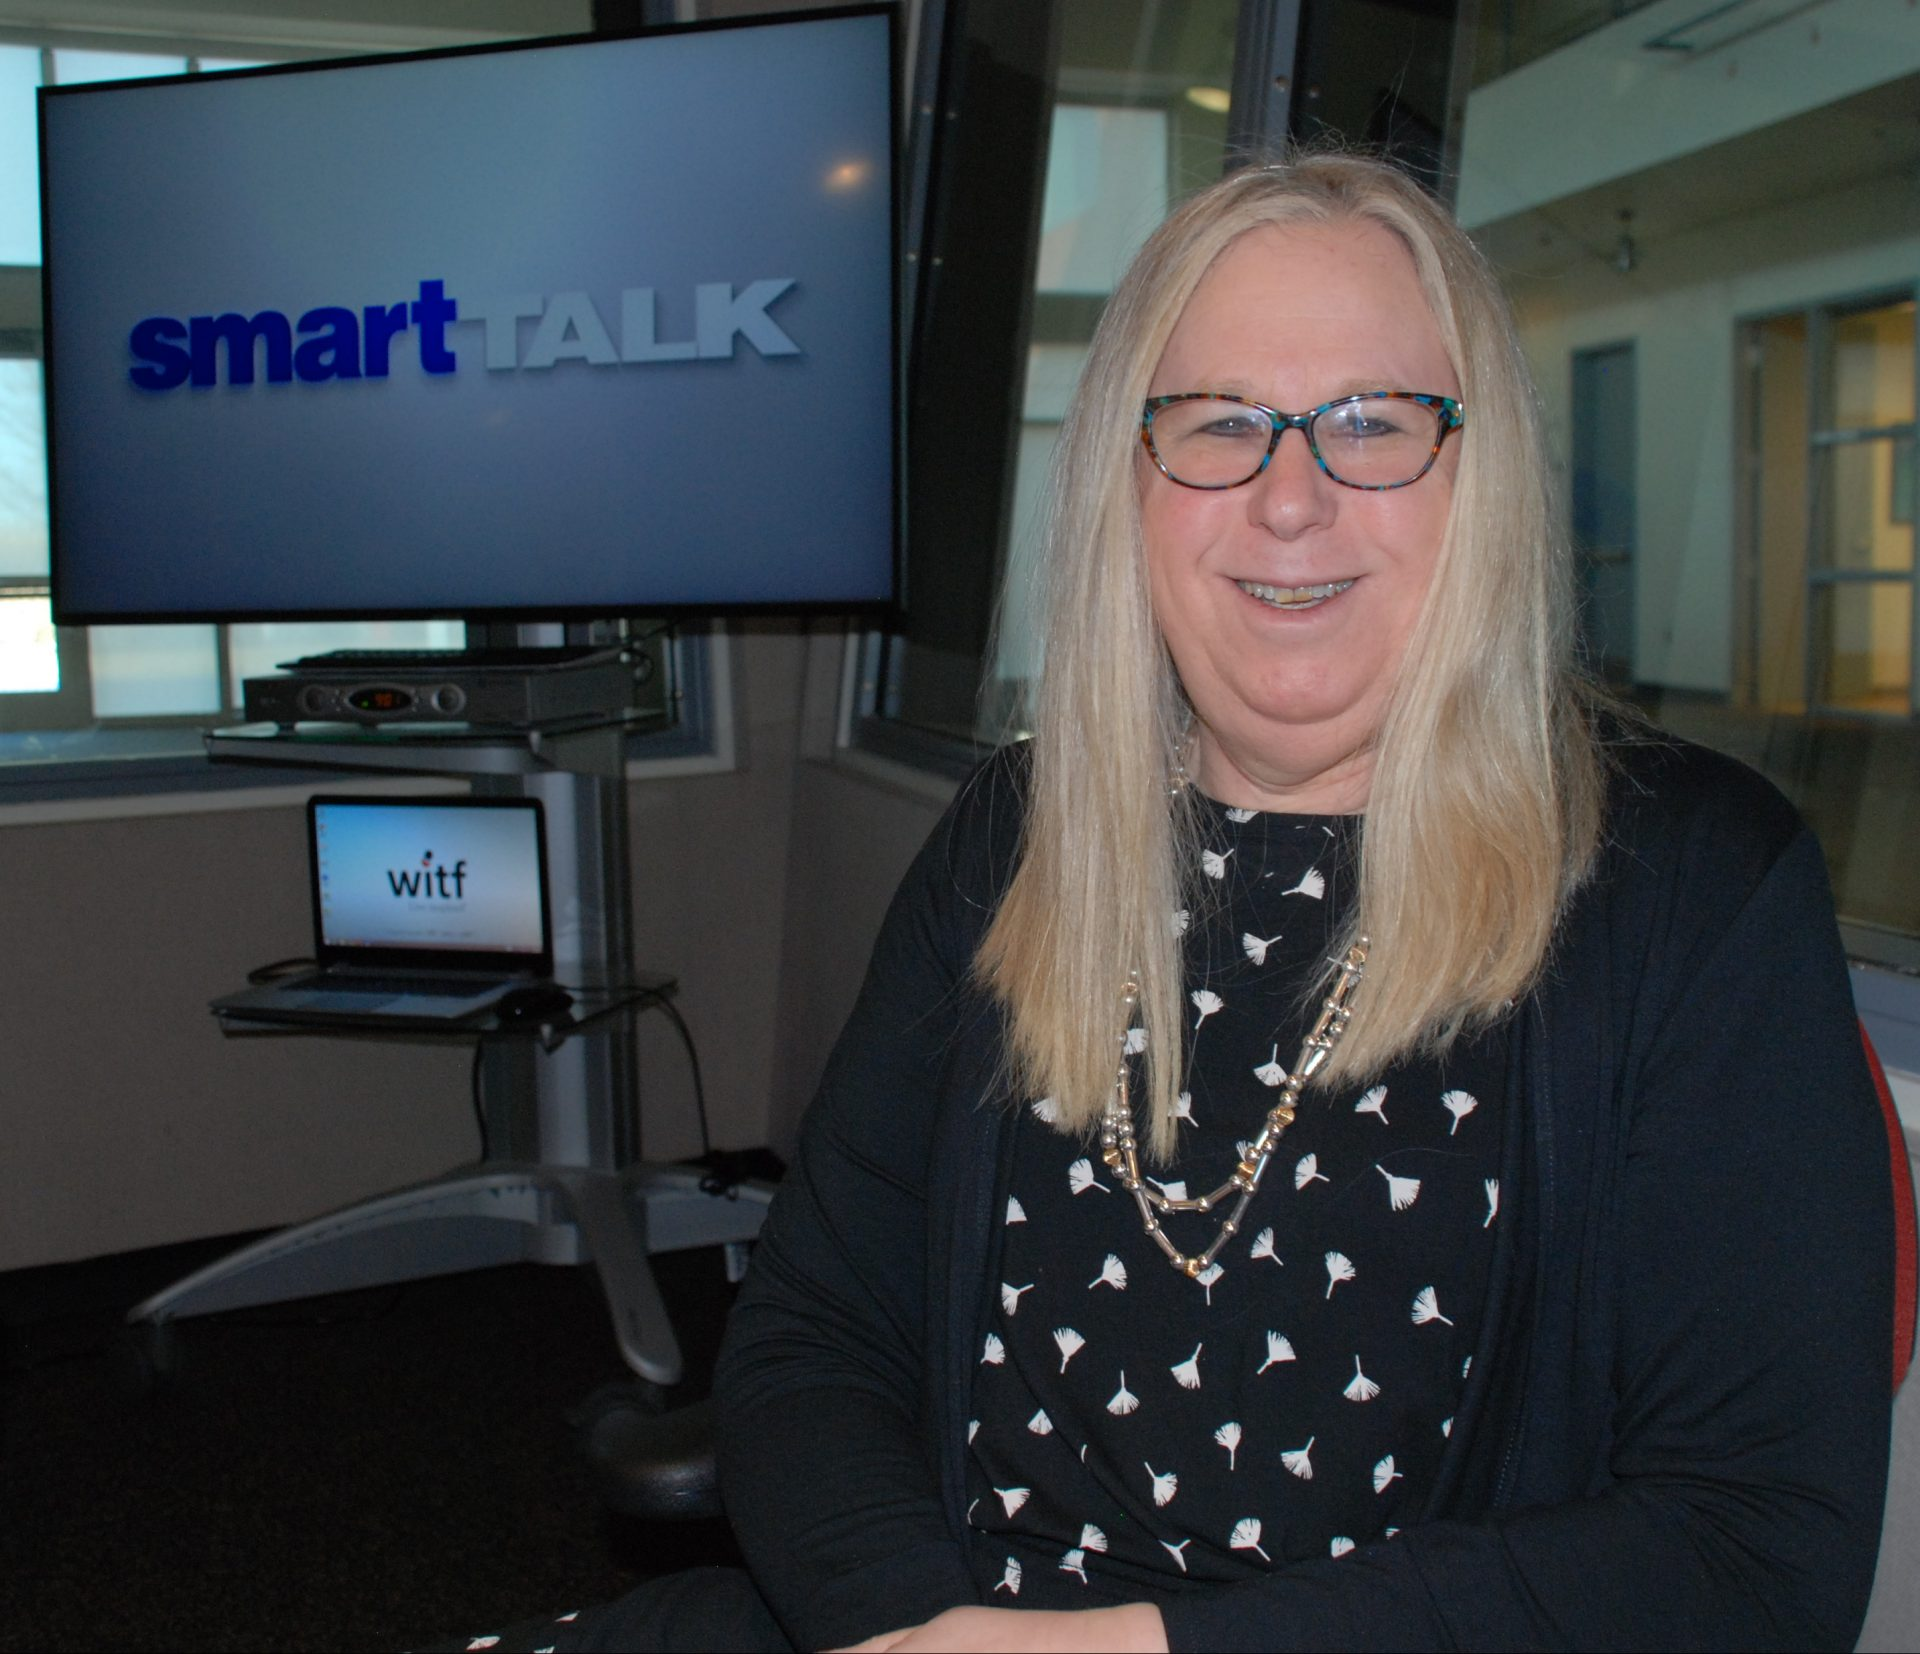 Dr. Rachel Levine, MD. appears on Smart Talk on March 2, 2020.